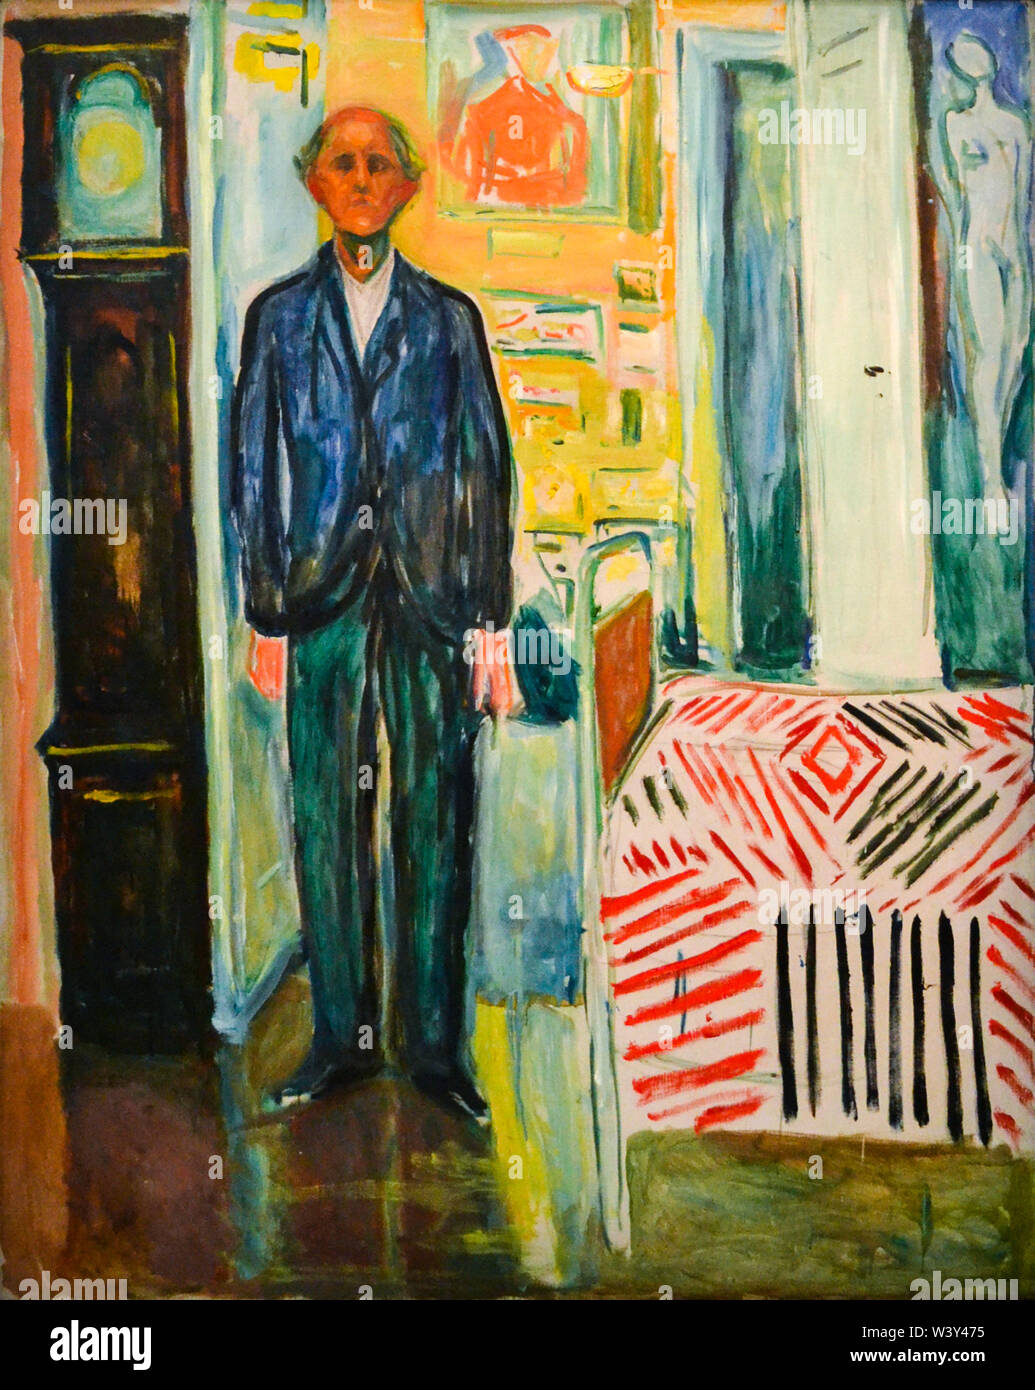 Edvard Munch, Self-Portrait Between the Clock and the Bed, painting, 1940-1943 - Stock Image